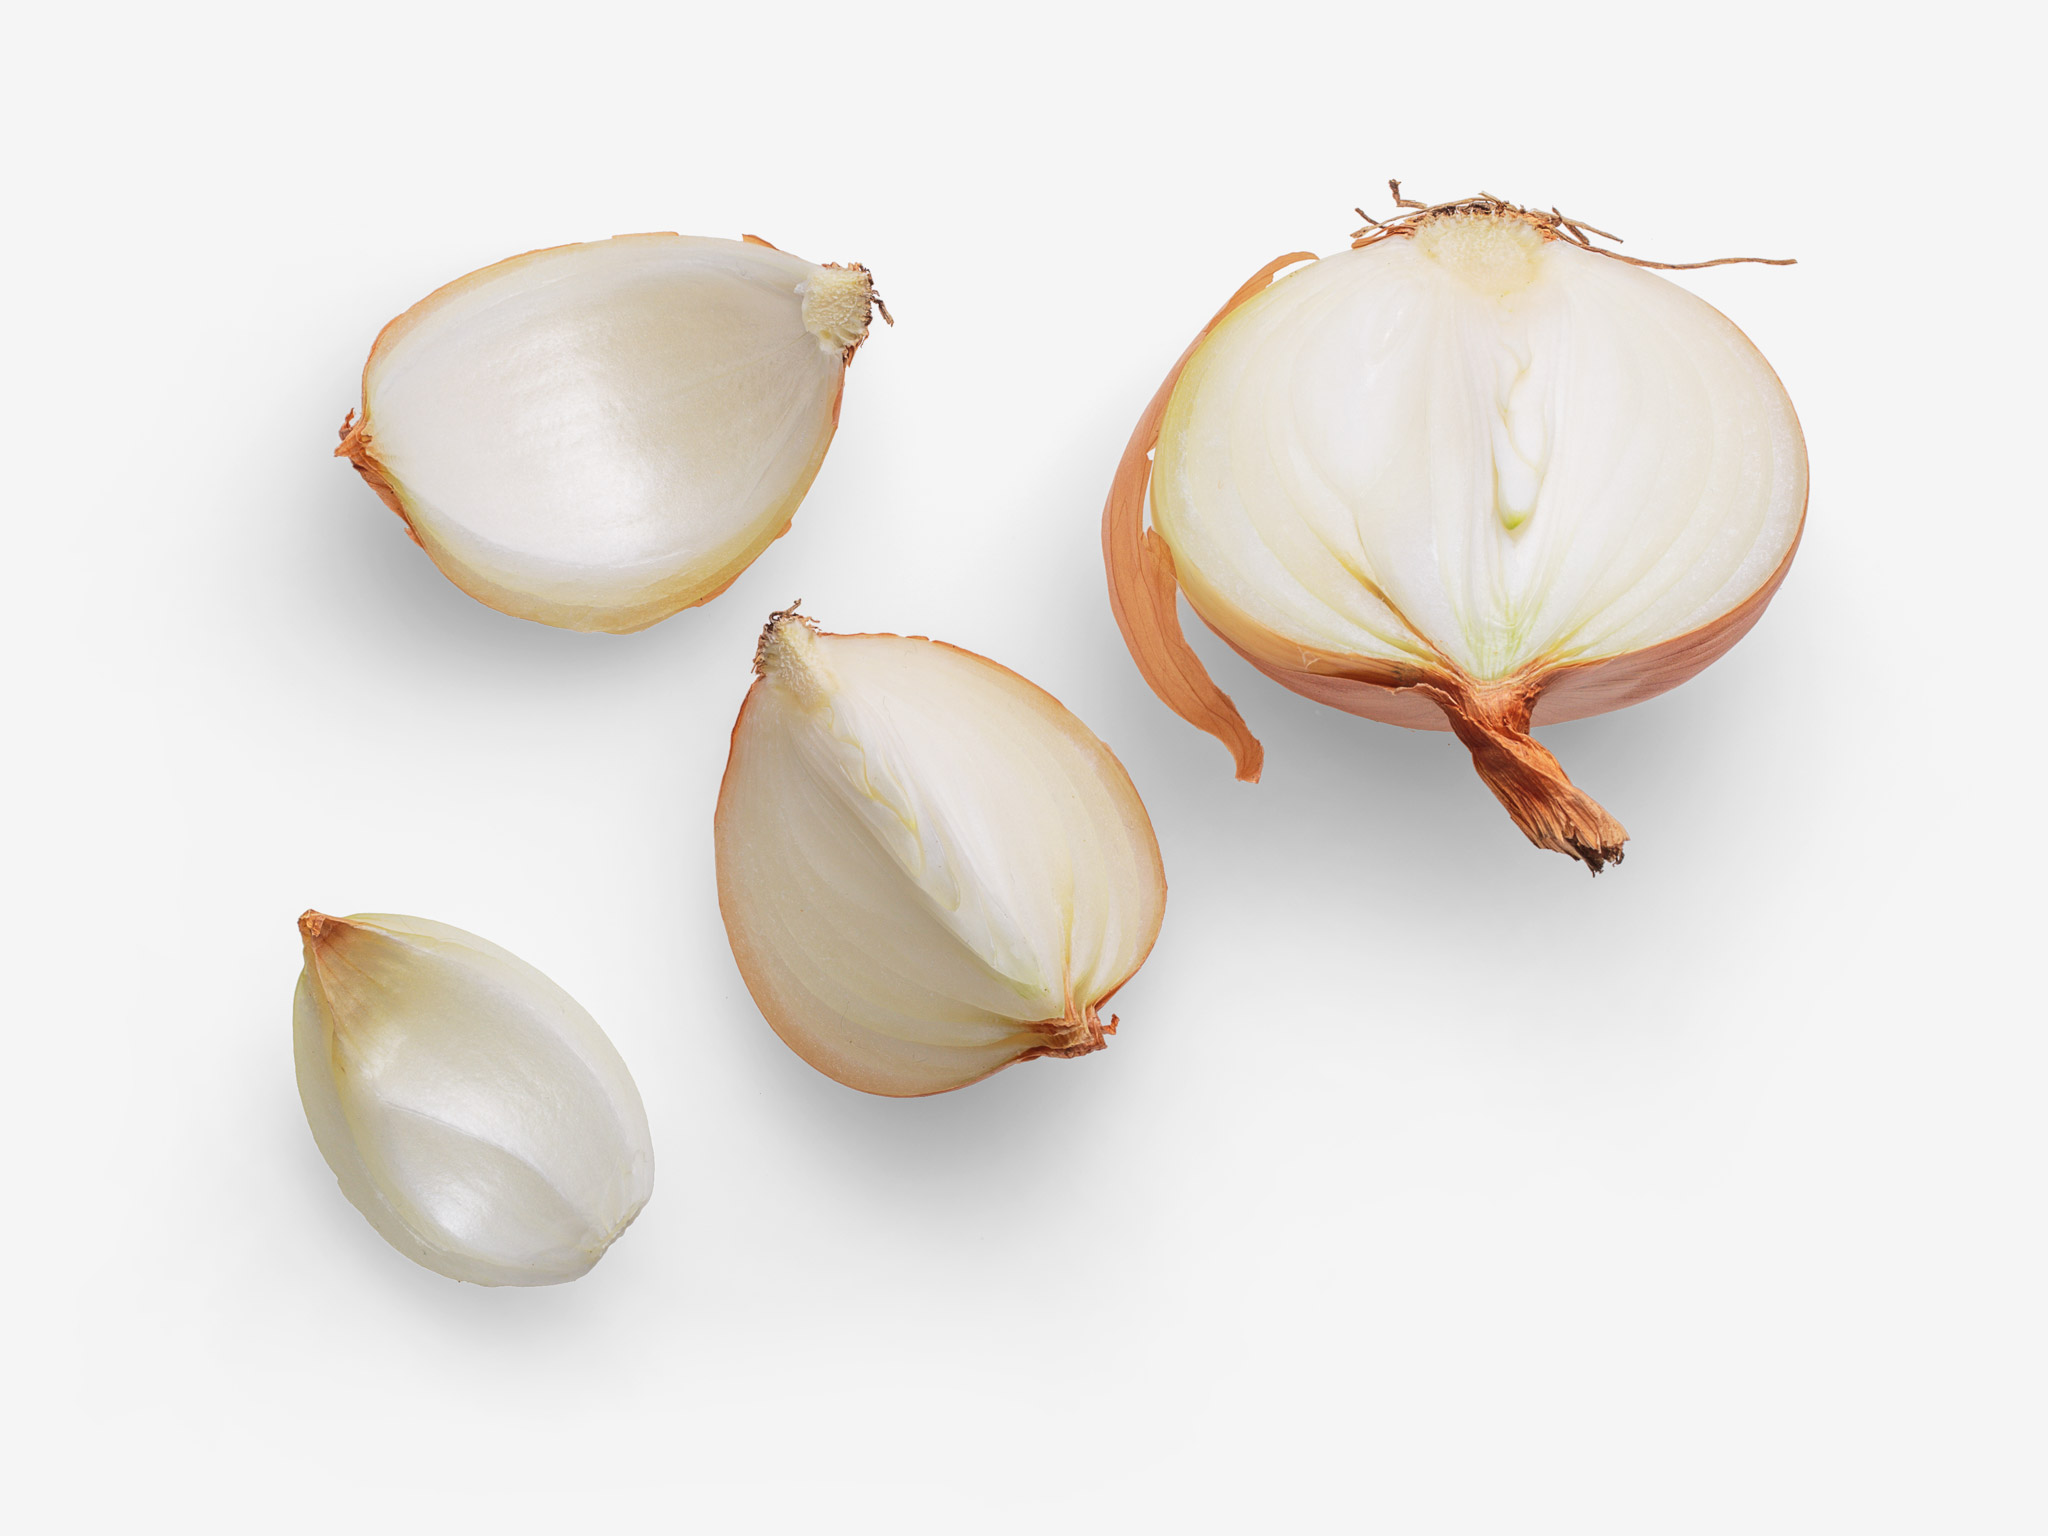 Onion PSD image with transparent background